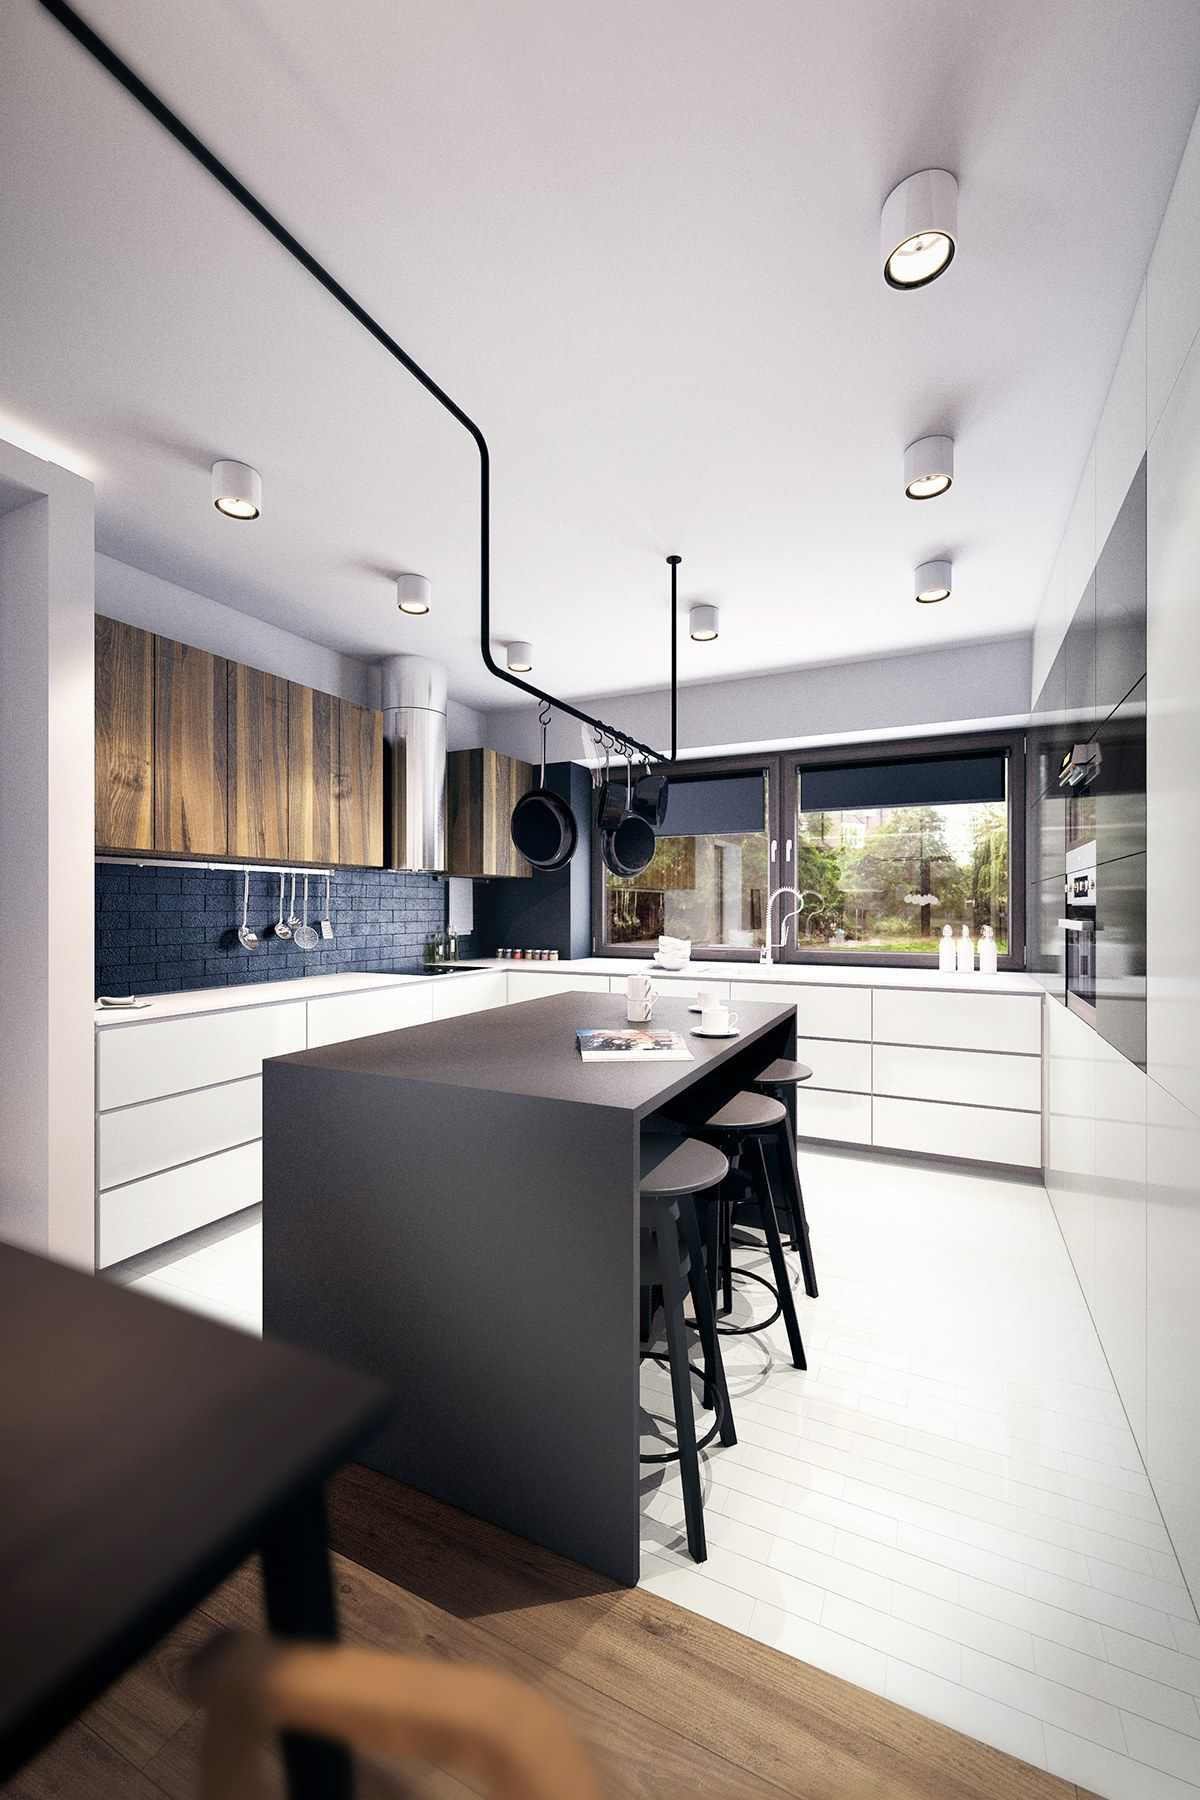 This kitchen is allowed an entire room, which means pot racks galore ...